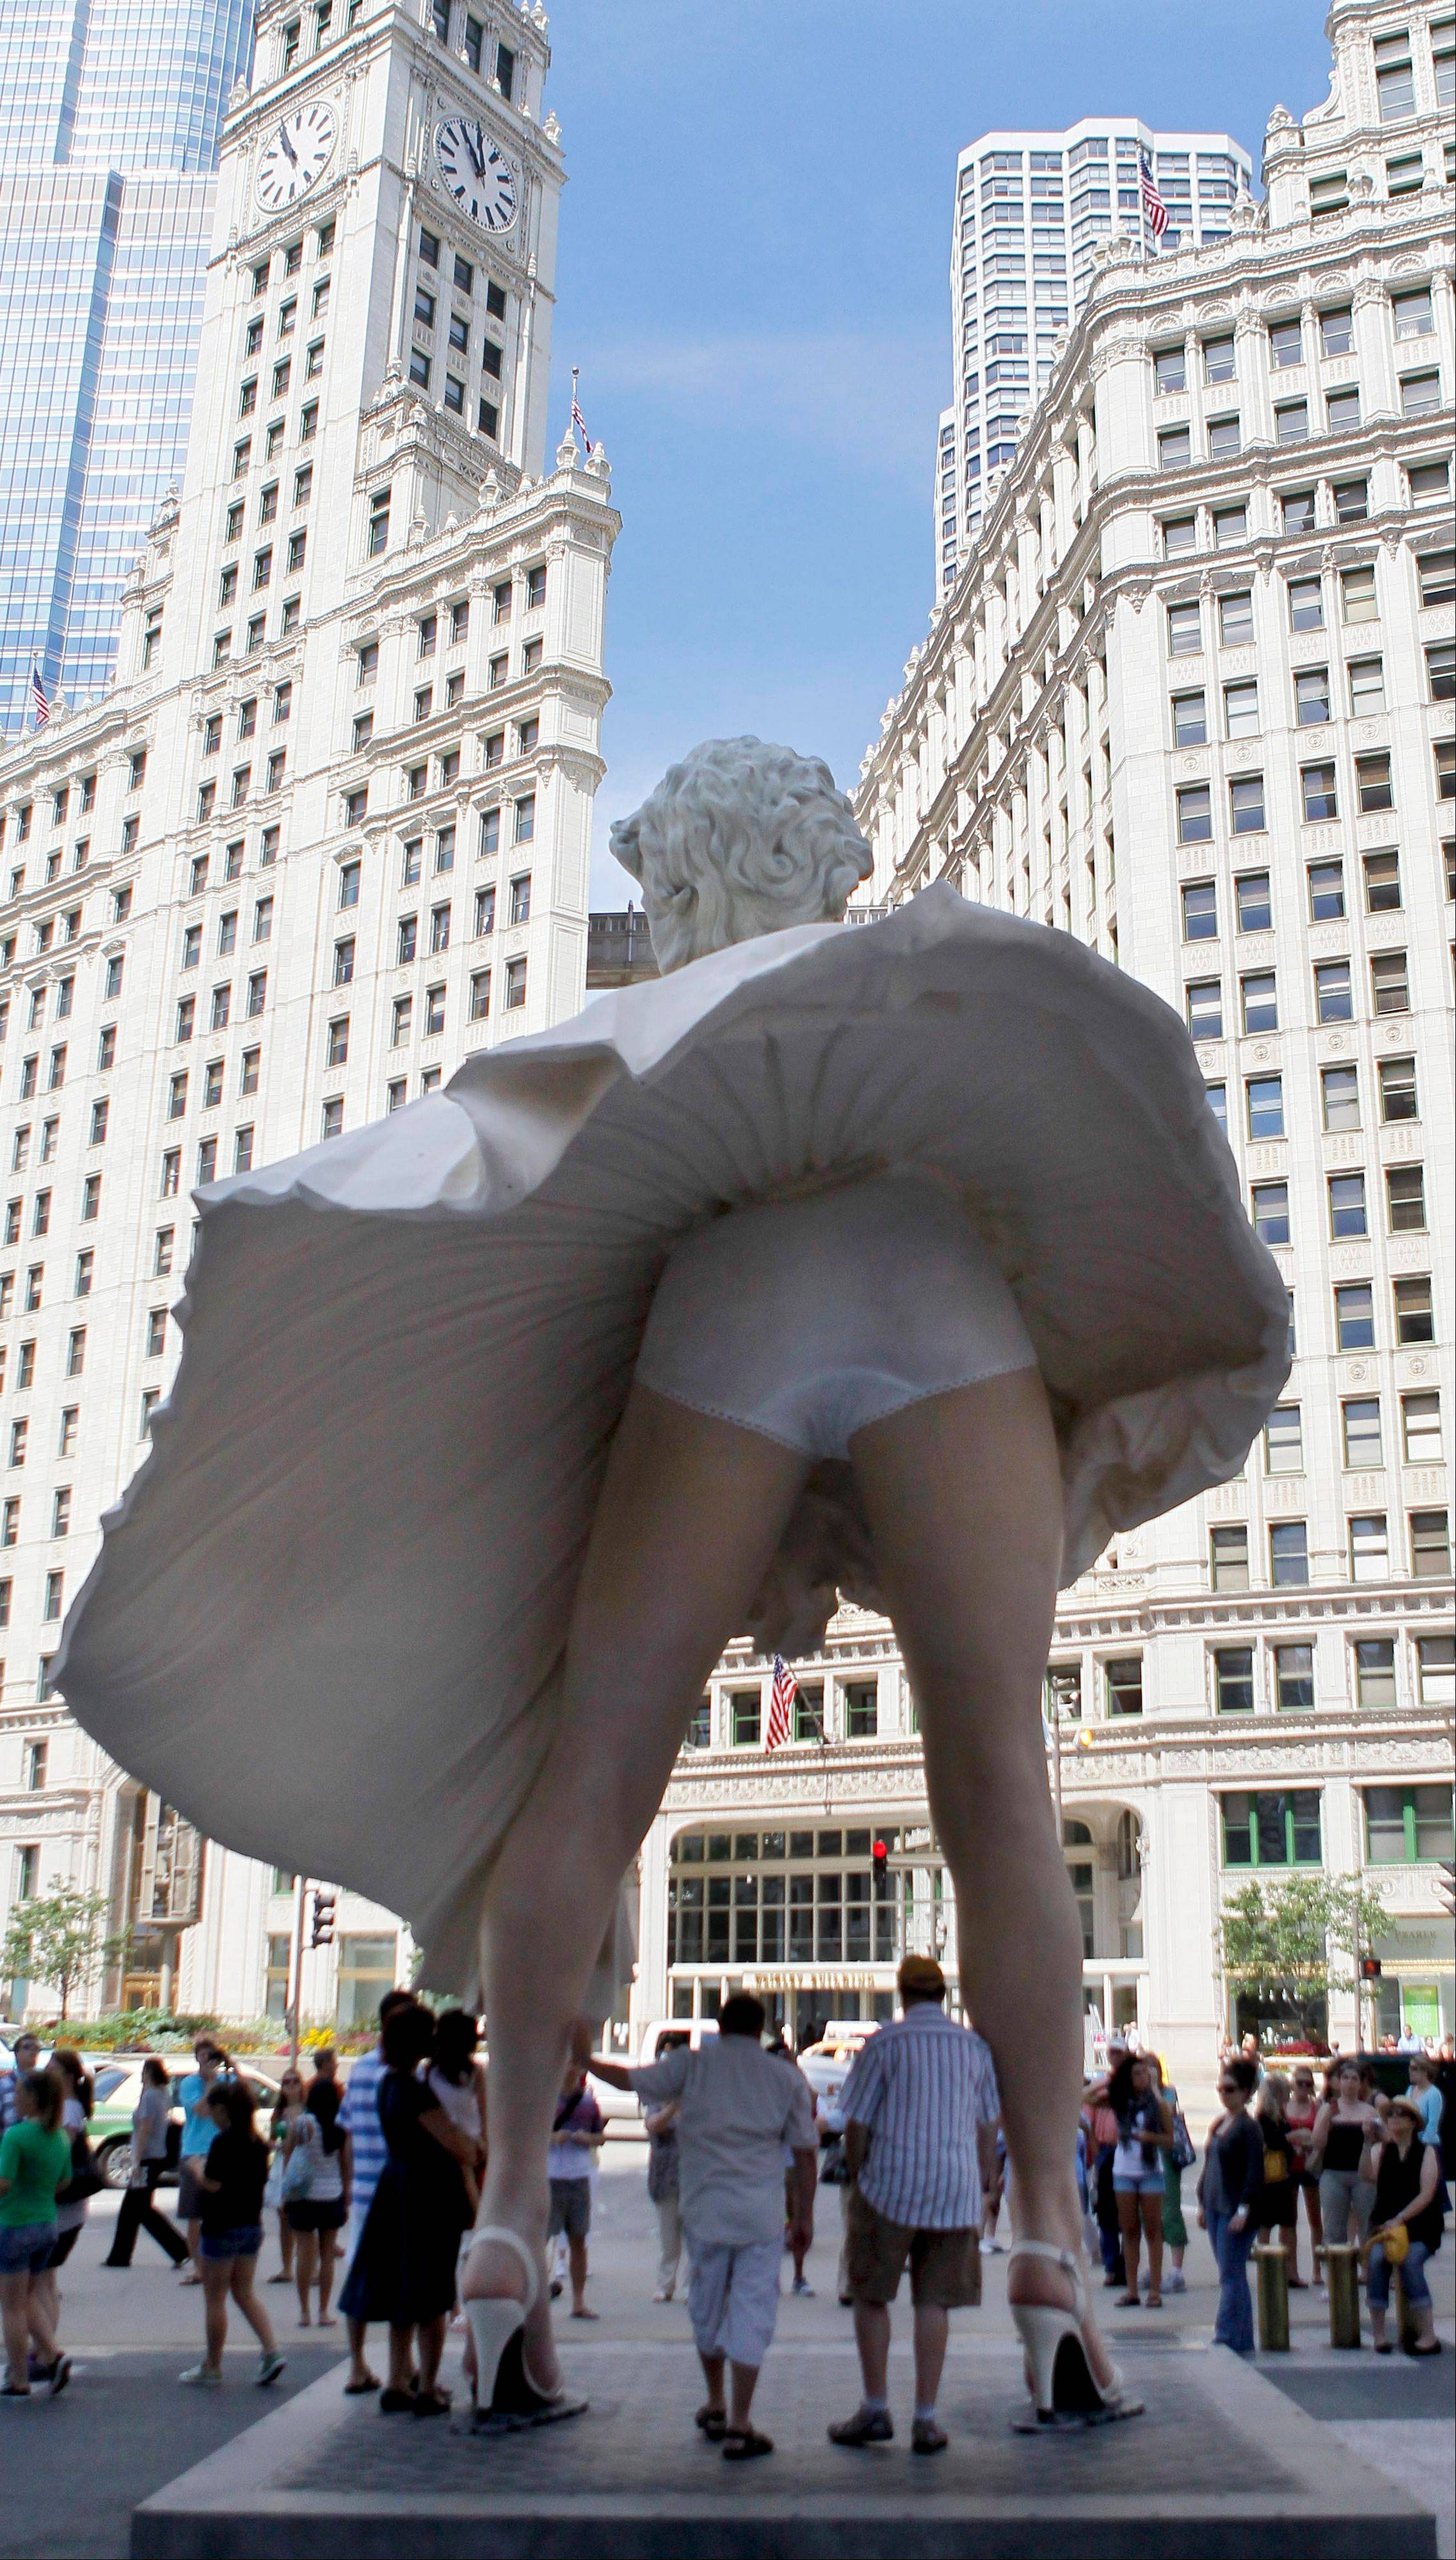 Curious spectators have their photo taken around Seward Johnson's 26-foot-tall sculpture of Marilyn Monroe, in her most famous windblown pose, on Michigan Ave. in Chicago.